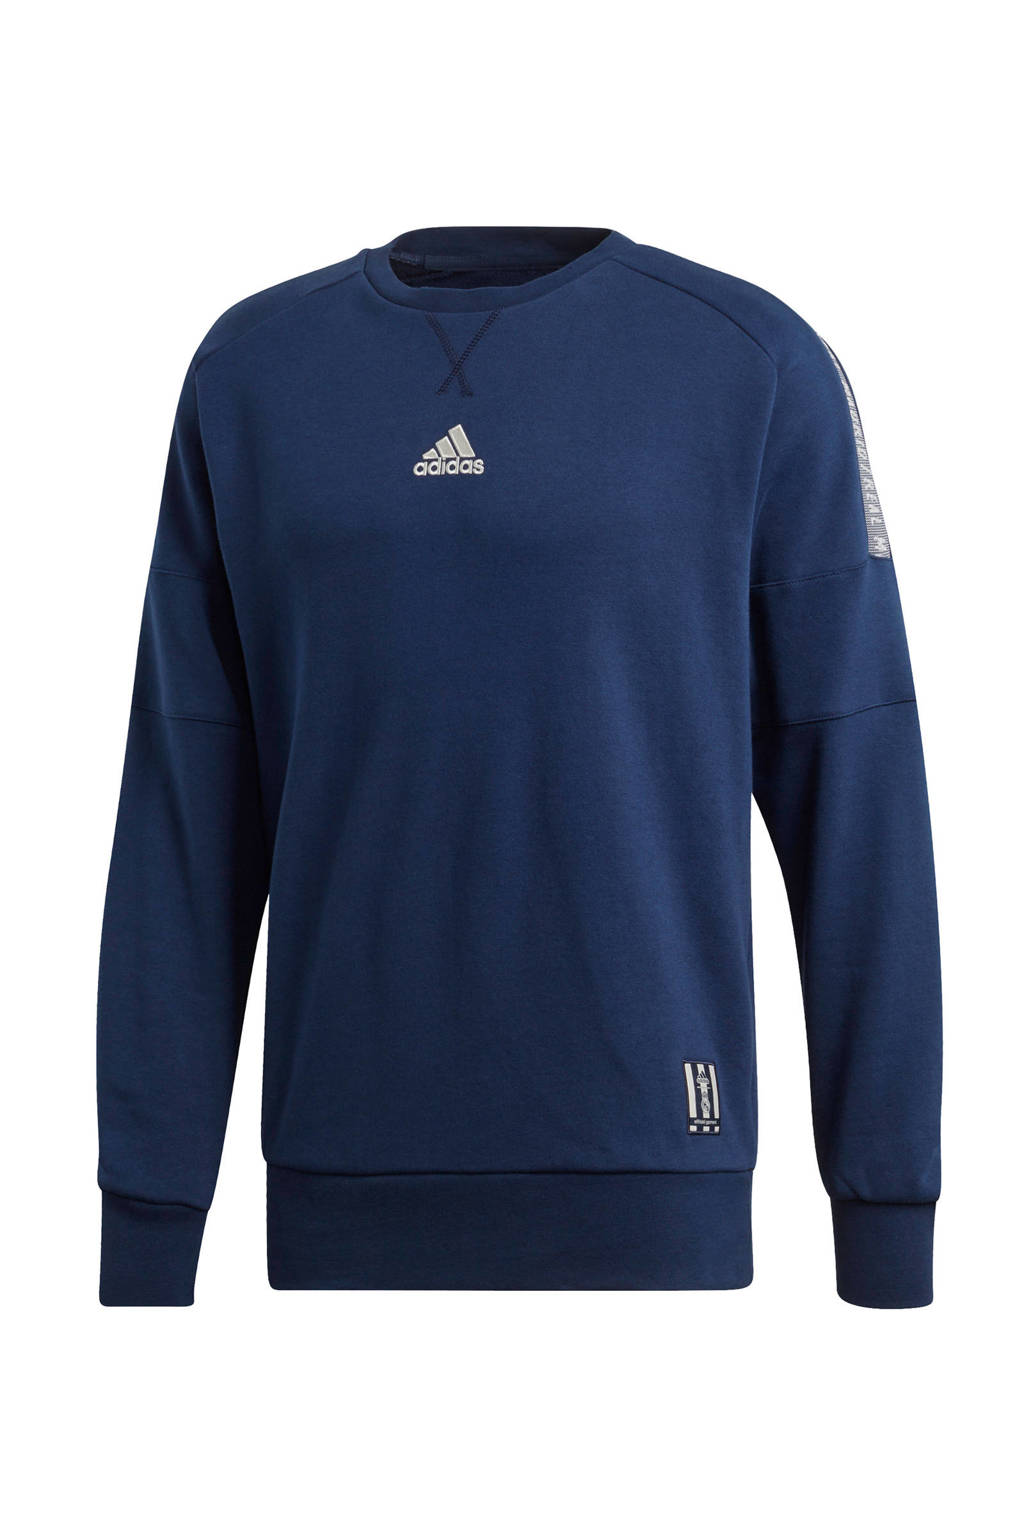 adidas performance Senior Real Madrid voetbalsweater blauw, Donkerblauw/wit